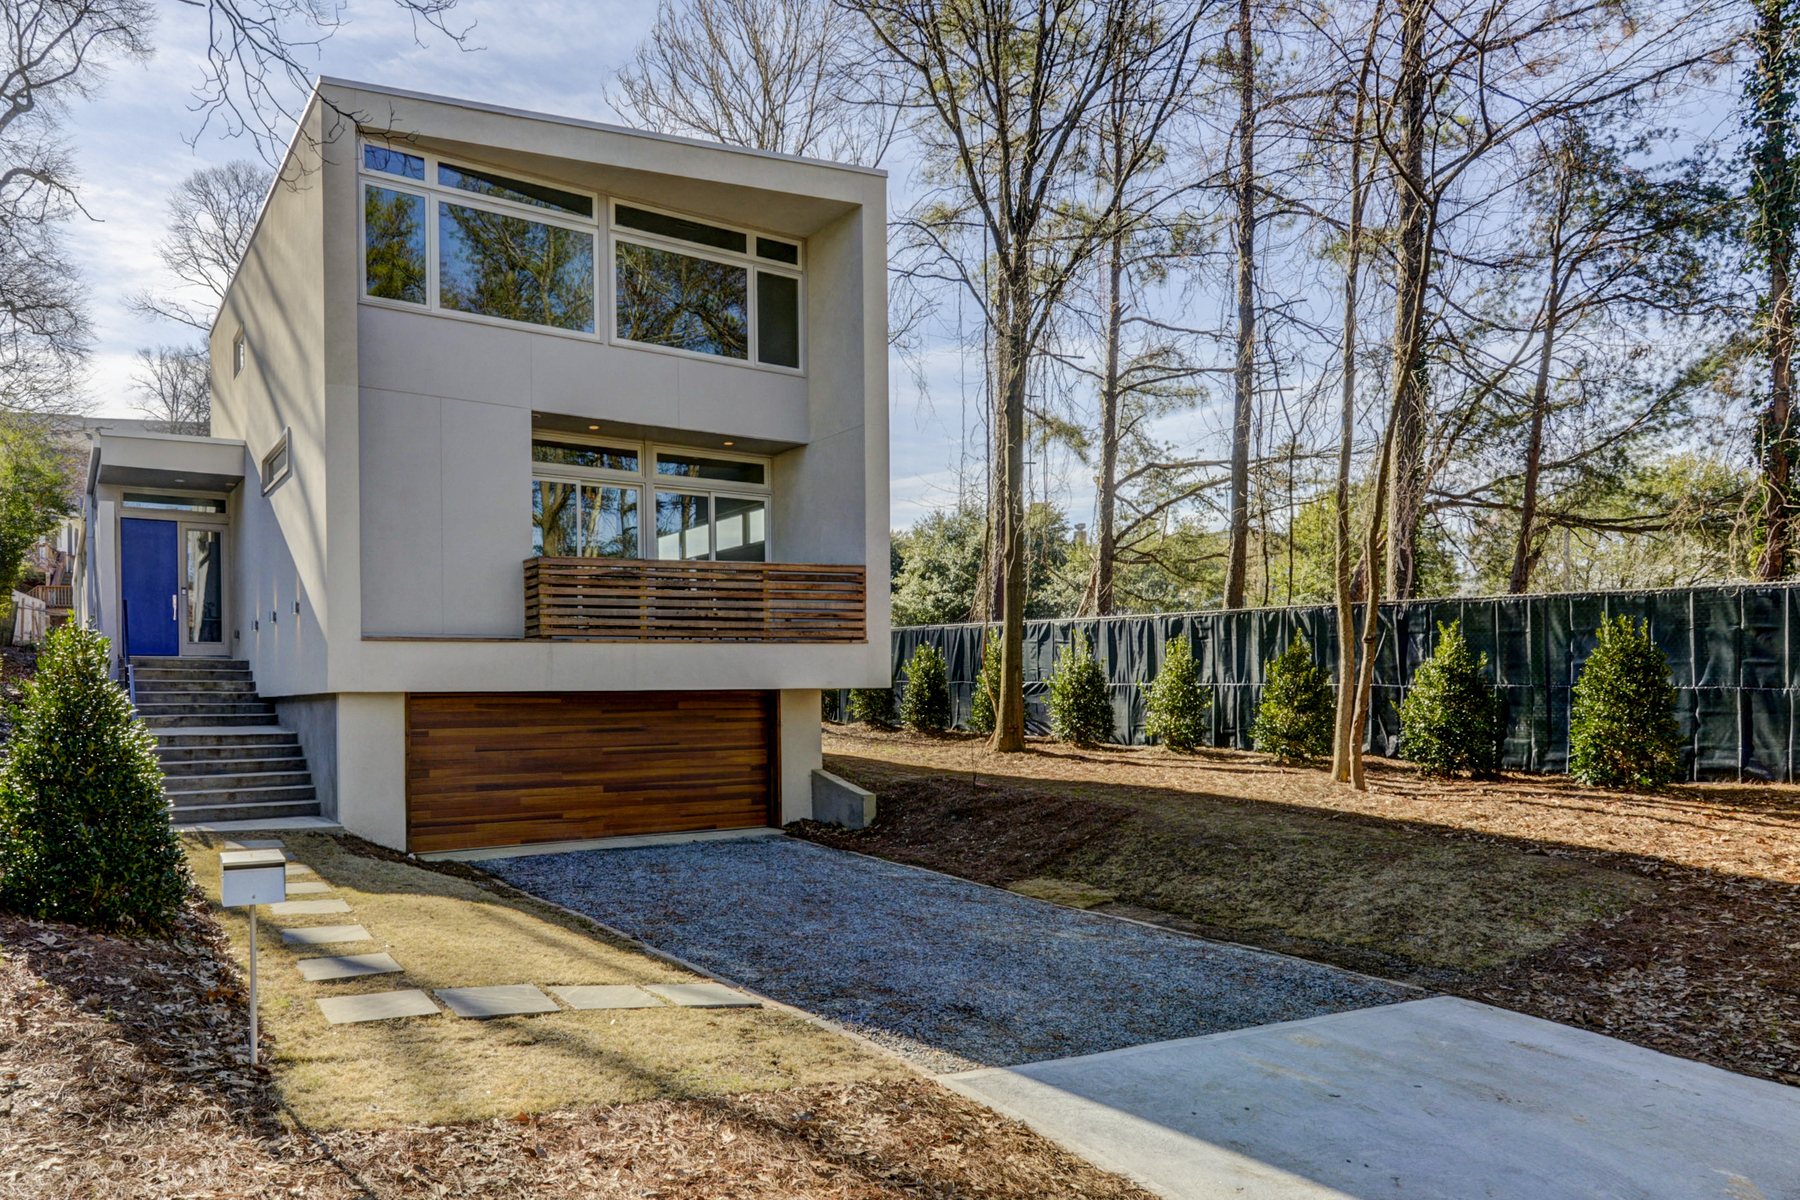 Single Family Home for Sale at Designer Home Steps from the Beltline and Ponce City Market 811 Belgrade Avenue NE Poncey Highland, Atlanta, Georgia, 30306 United States